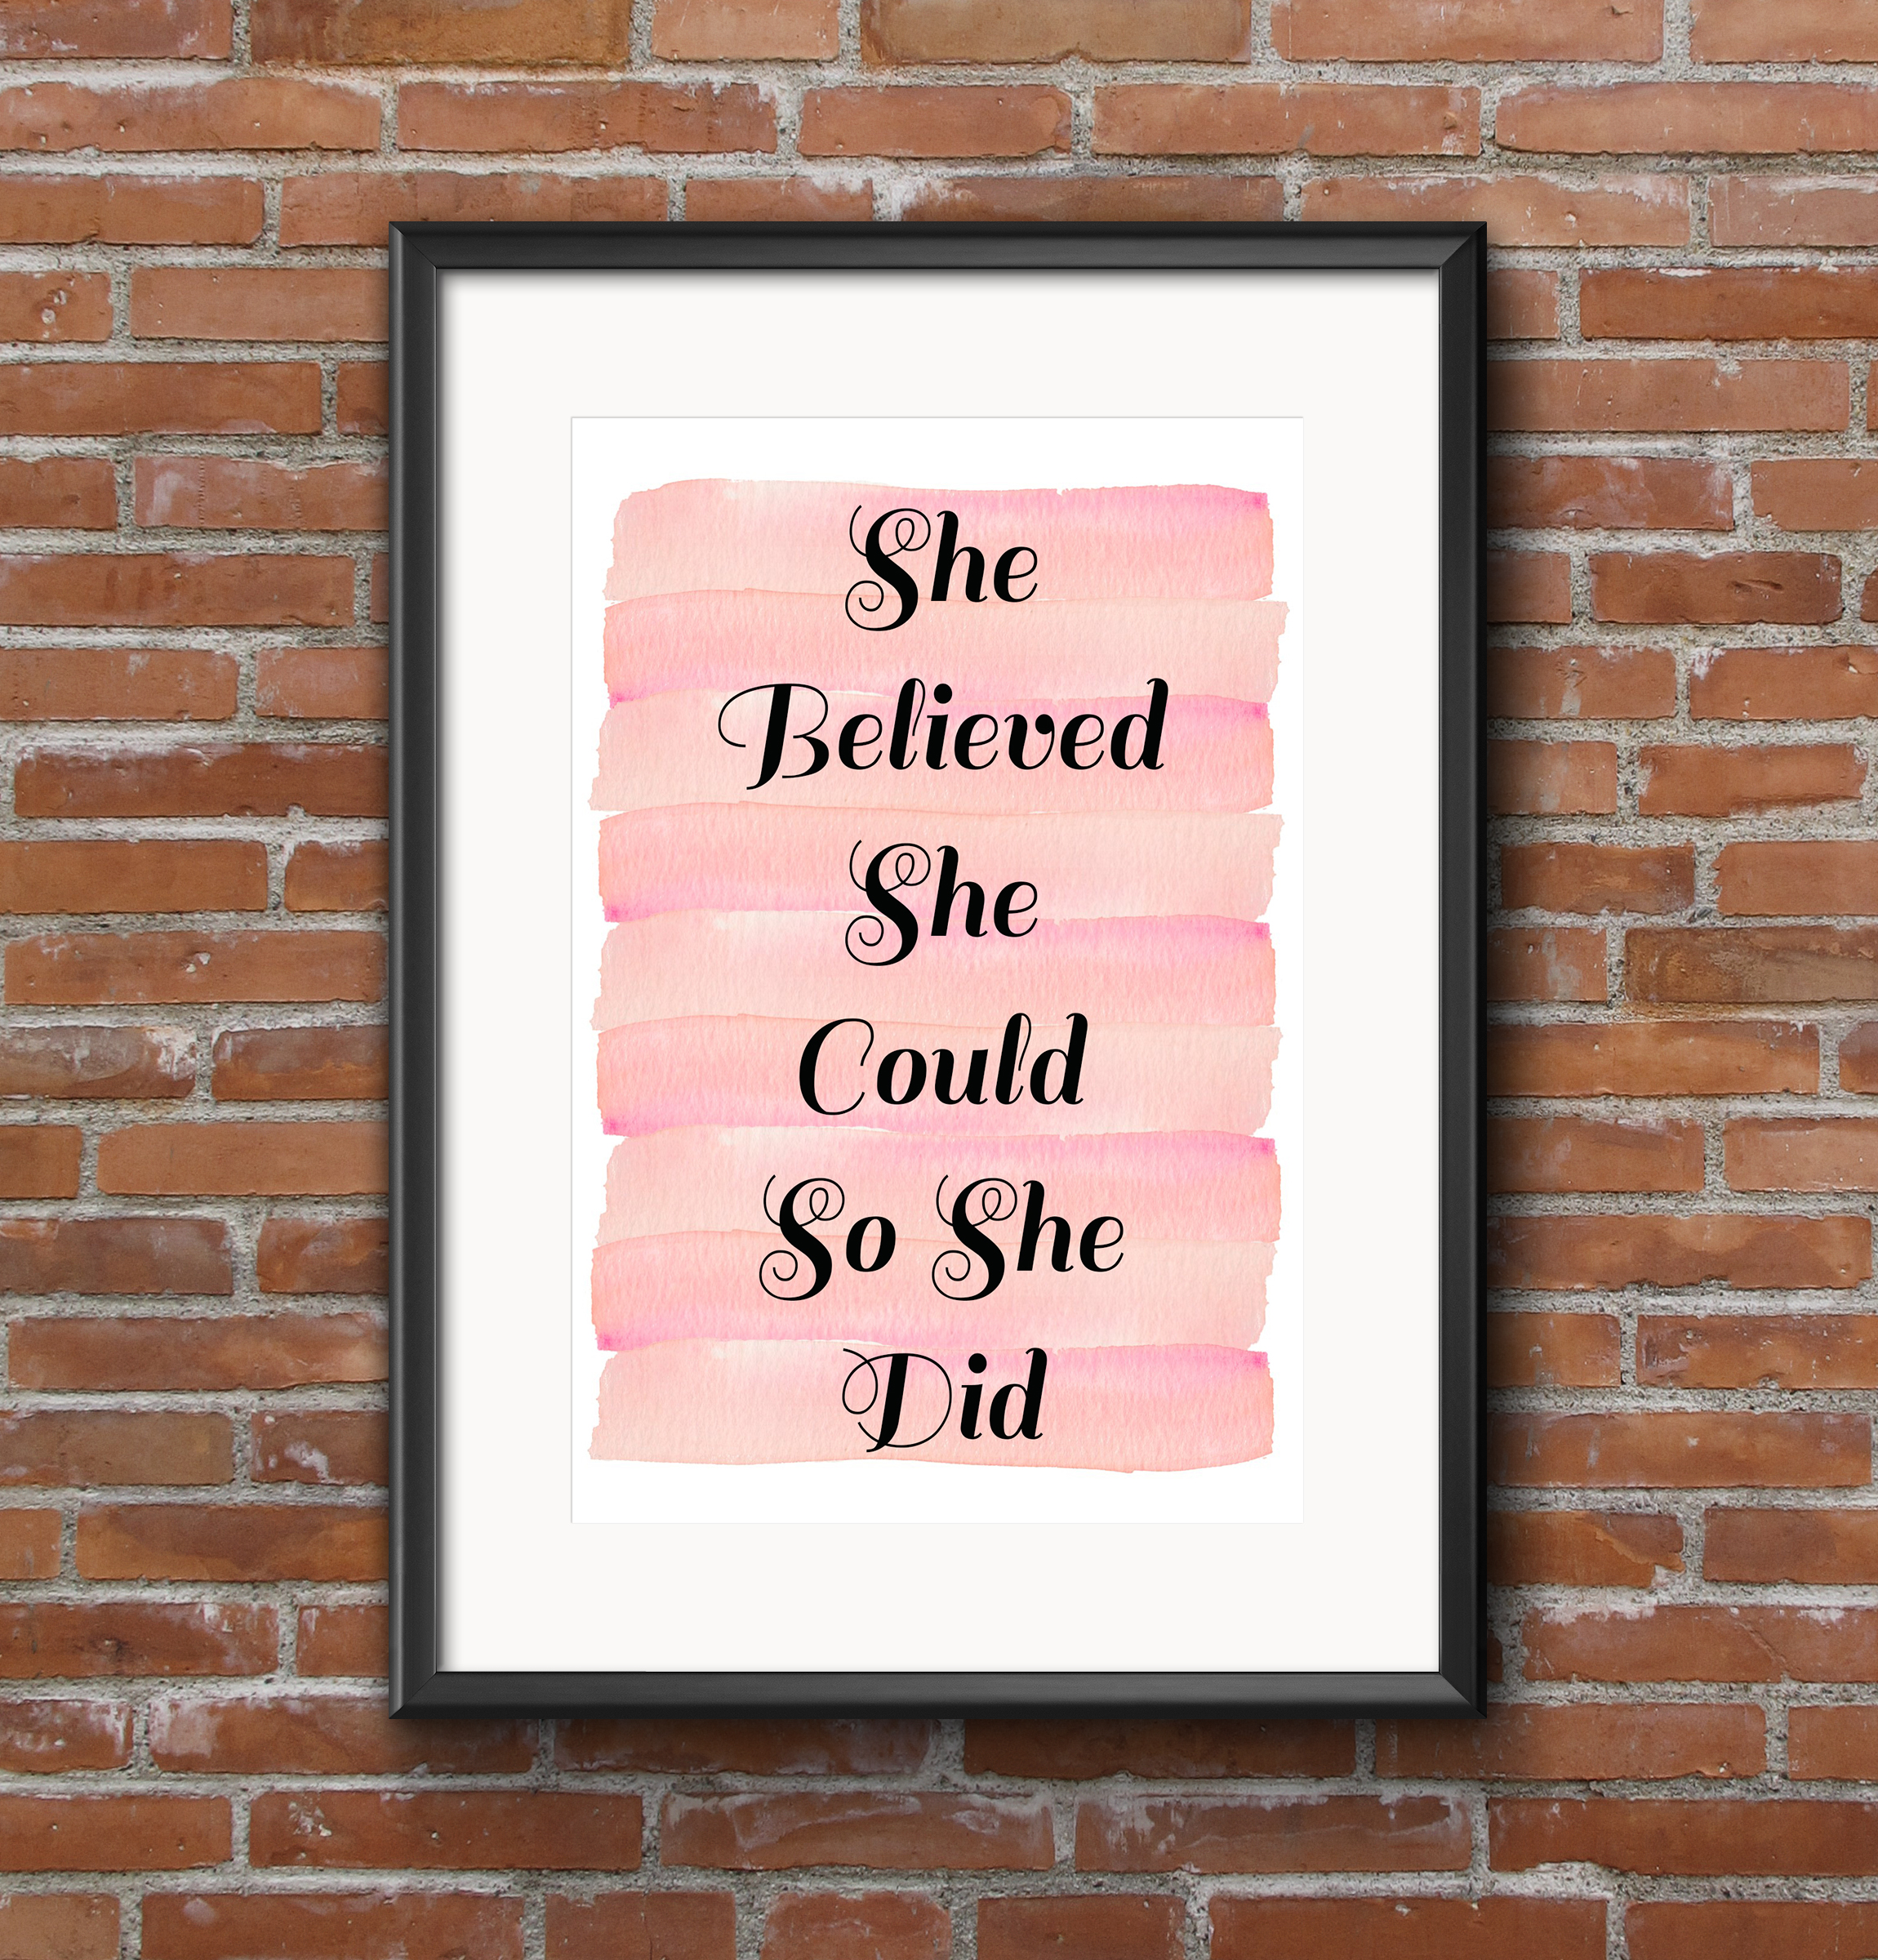 She believed she could so she did framed